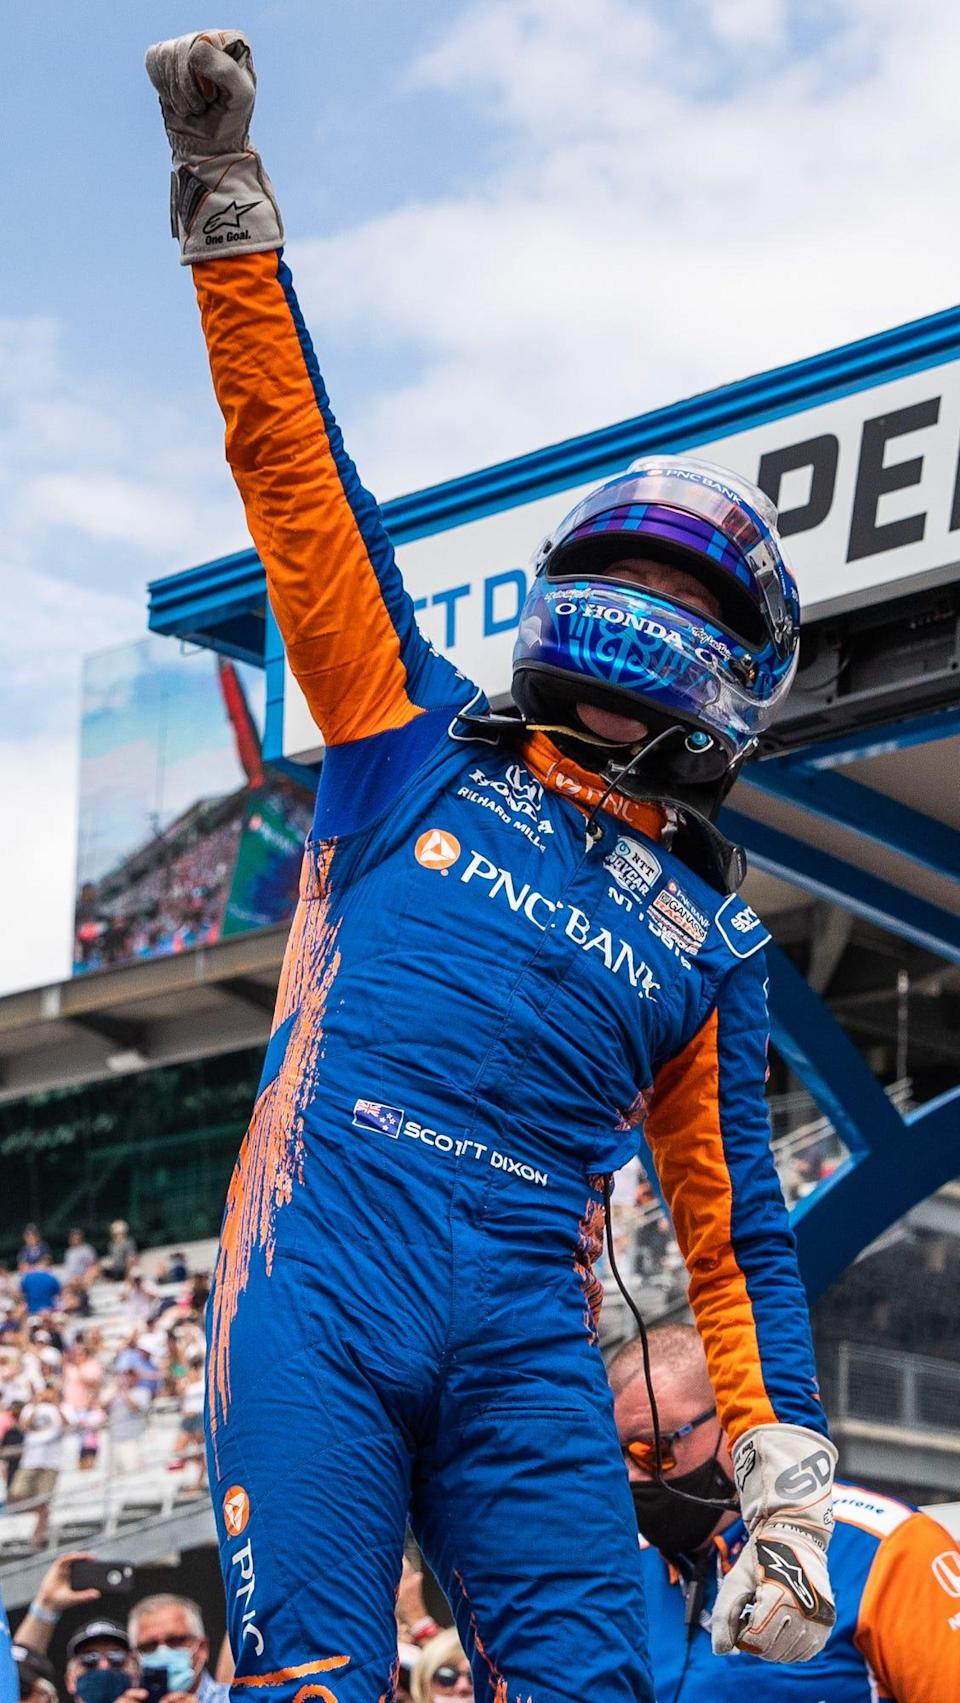 Scott Dixon, who will start on the pole Sunday, won the 2008 Indy 500 and is a six-time IndyCar Series champion.